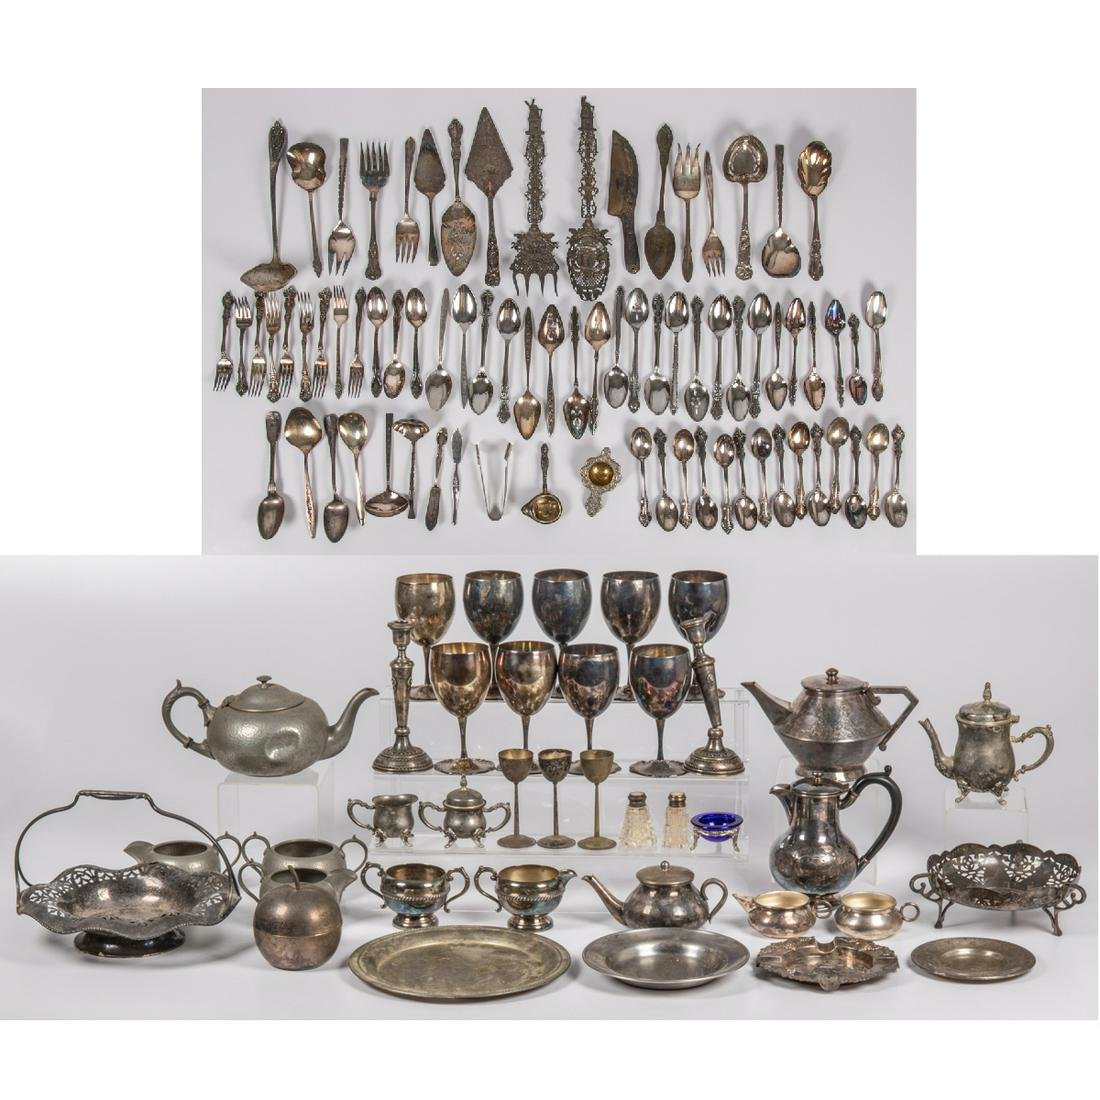 A Miscellaneous Collection of Sterling Silver and